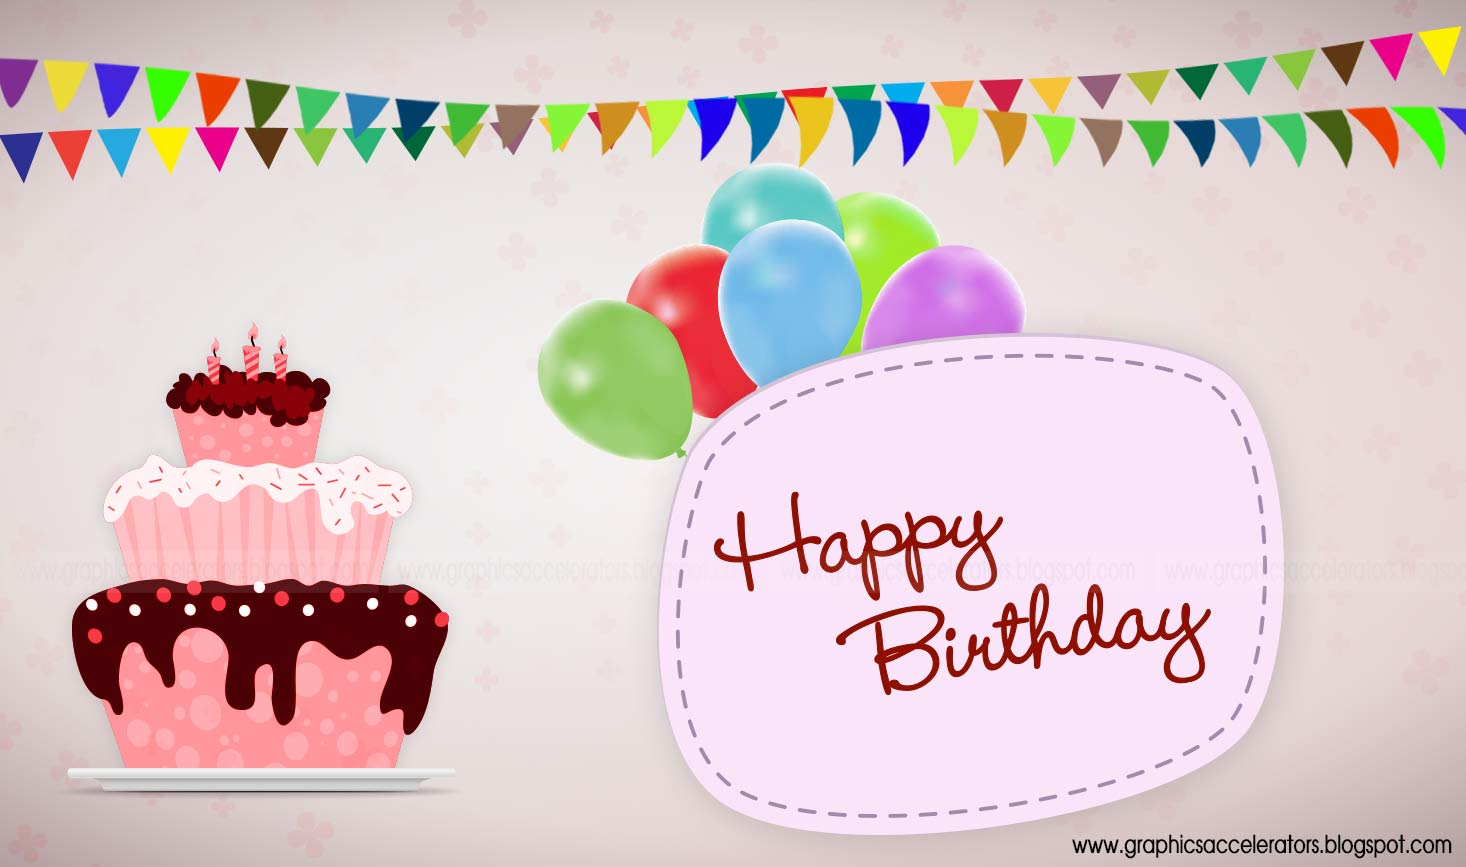 Free wallpaper birthday card wallpapersafari - Happy birthday card wallpaper ...